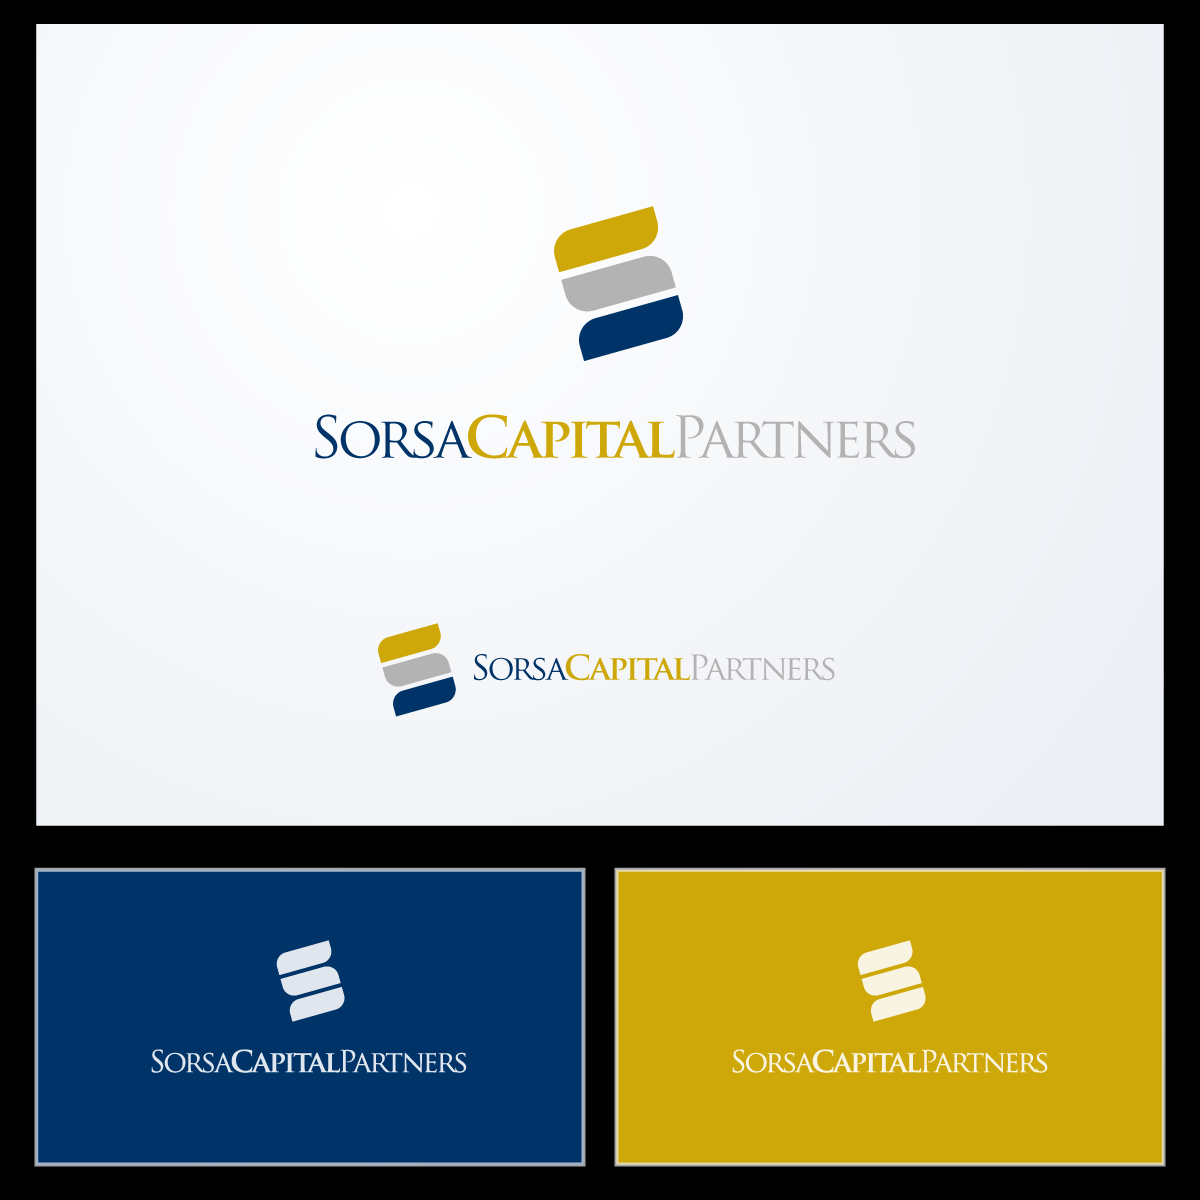 Logo Design by zesthar - Entry No. 46 in the Logo Design Contest Sorsa Capital Partners Logo Design.